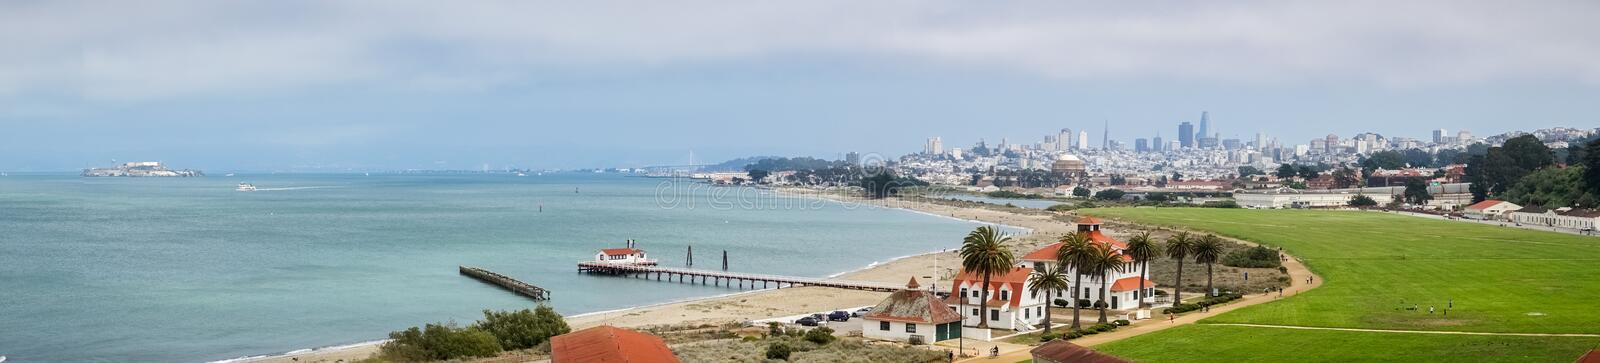 Panoramic view of Crissy Field and the bay shoreline royalty free stock images